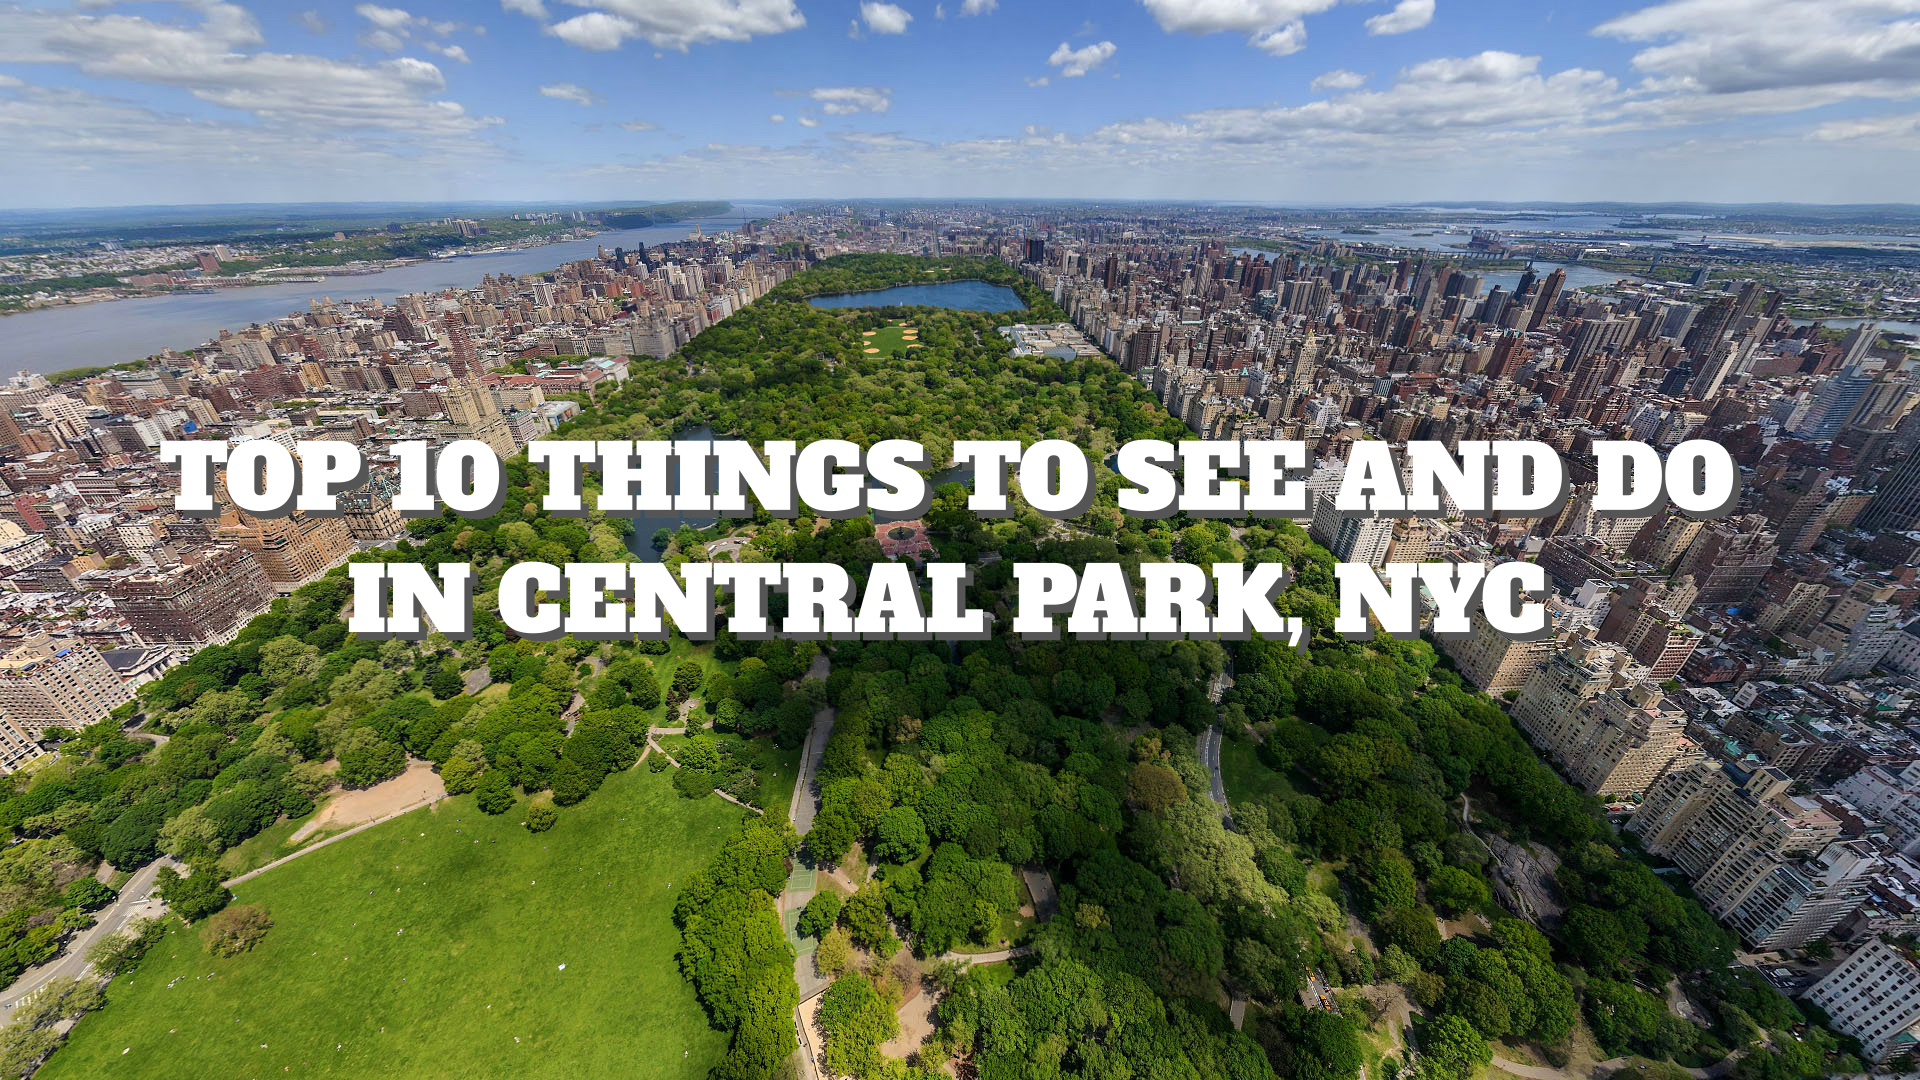 Top 10 things to see and do in central park nyc places for Fun things for couples to do in nyc